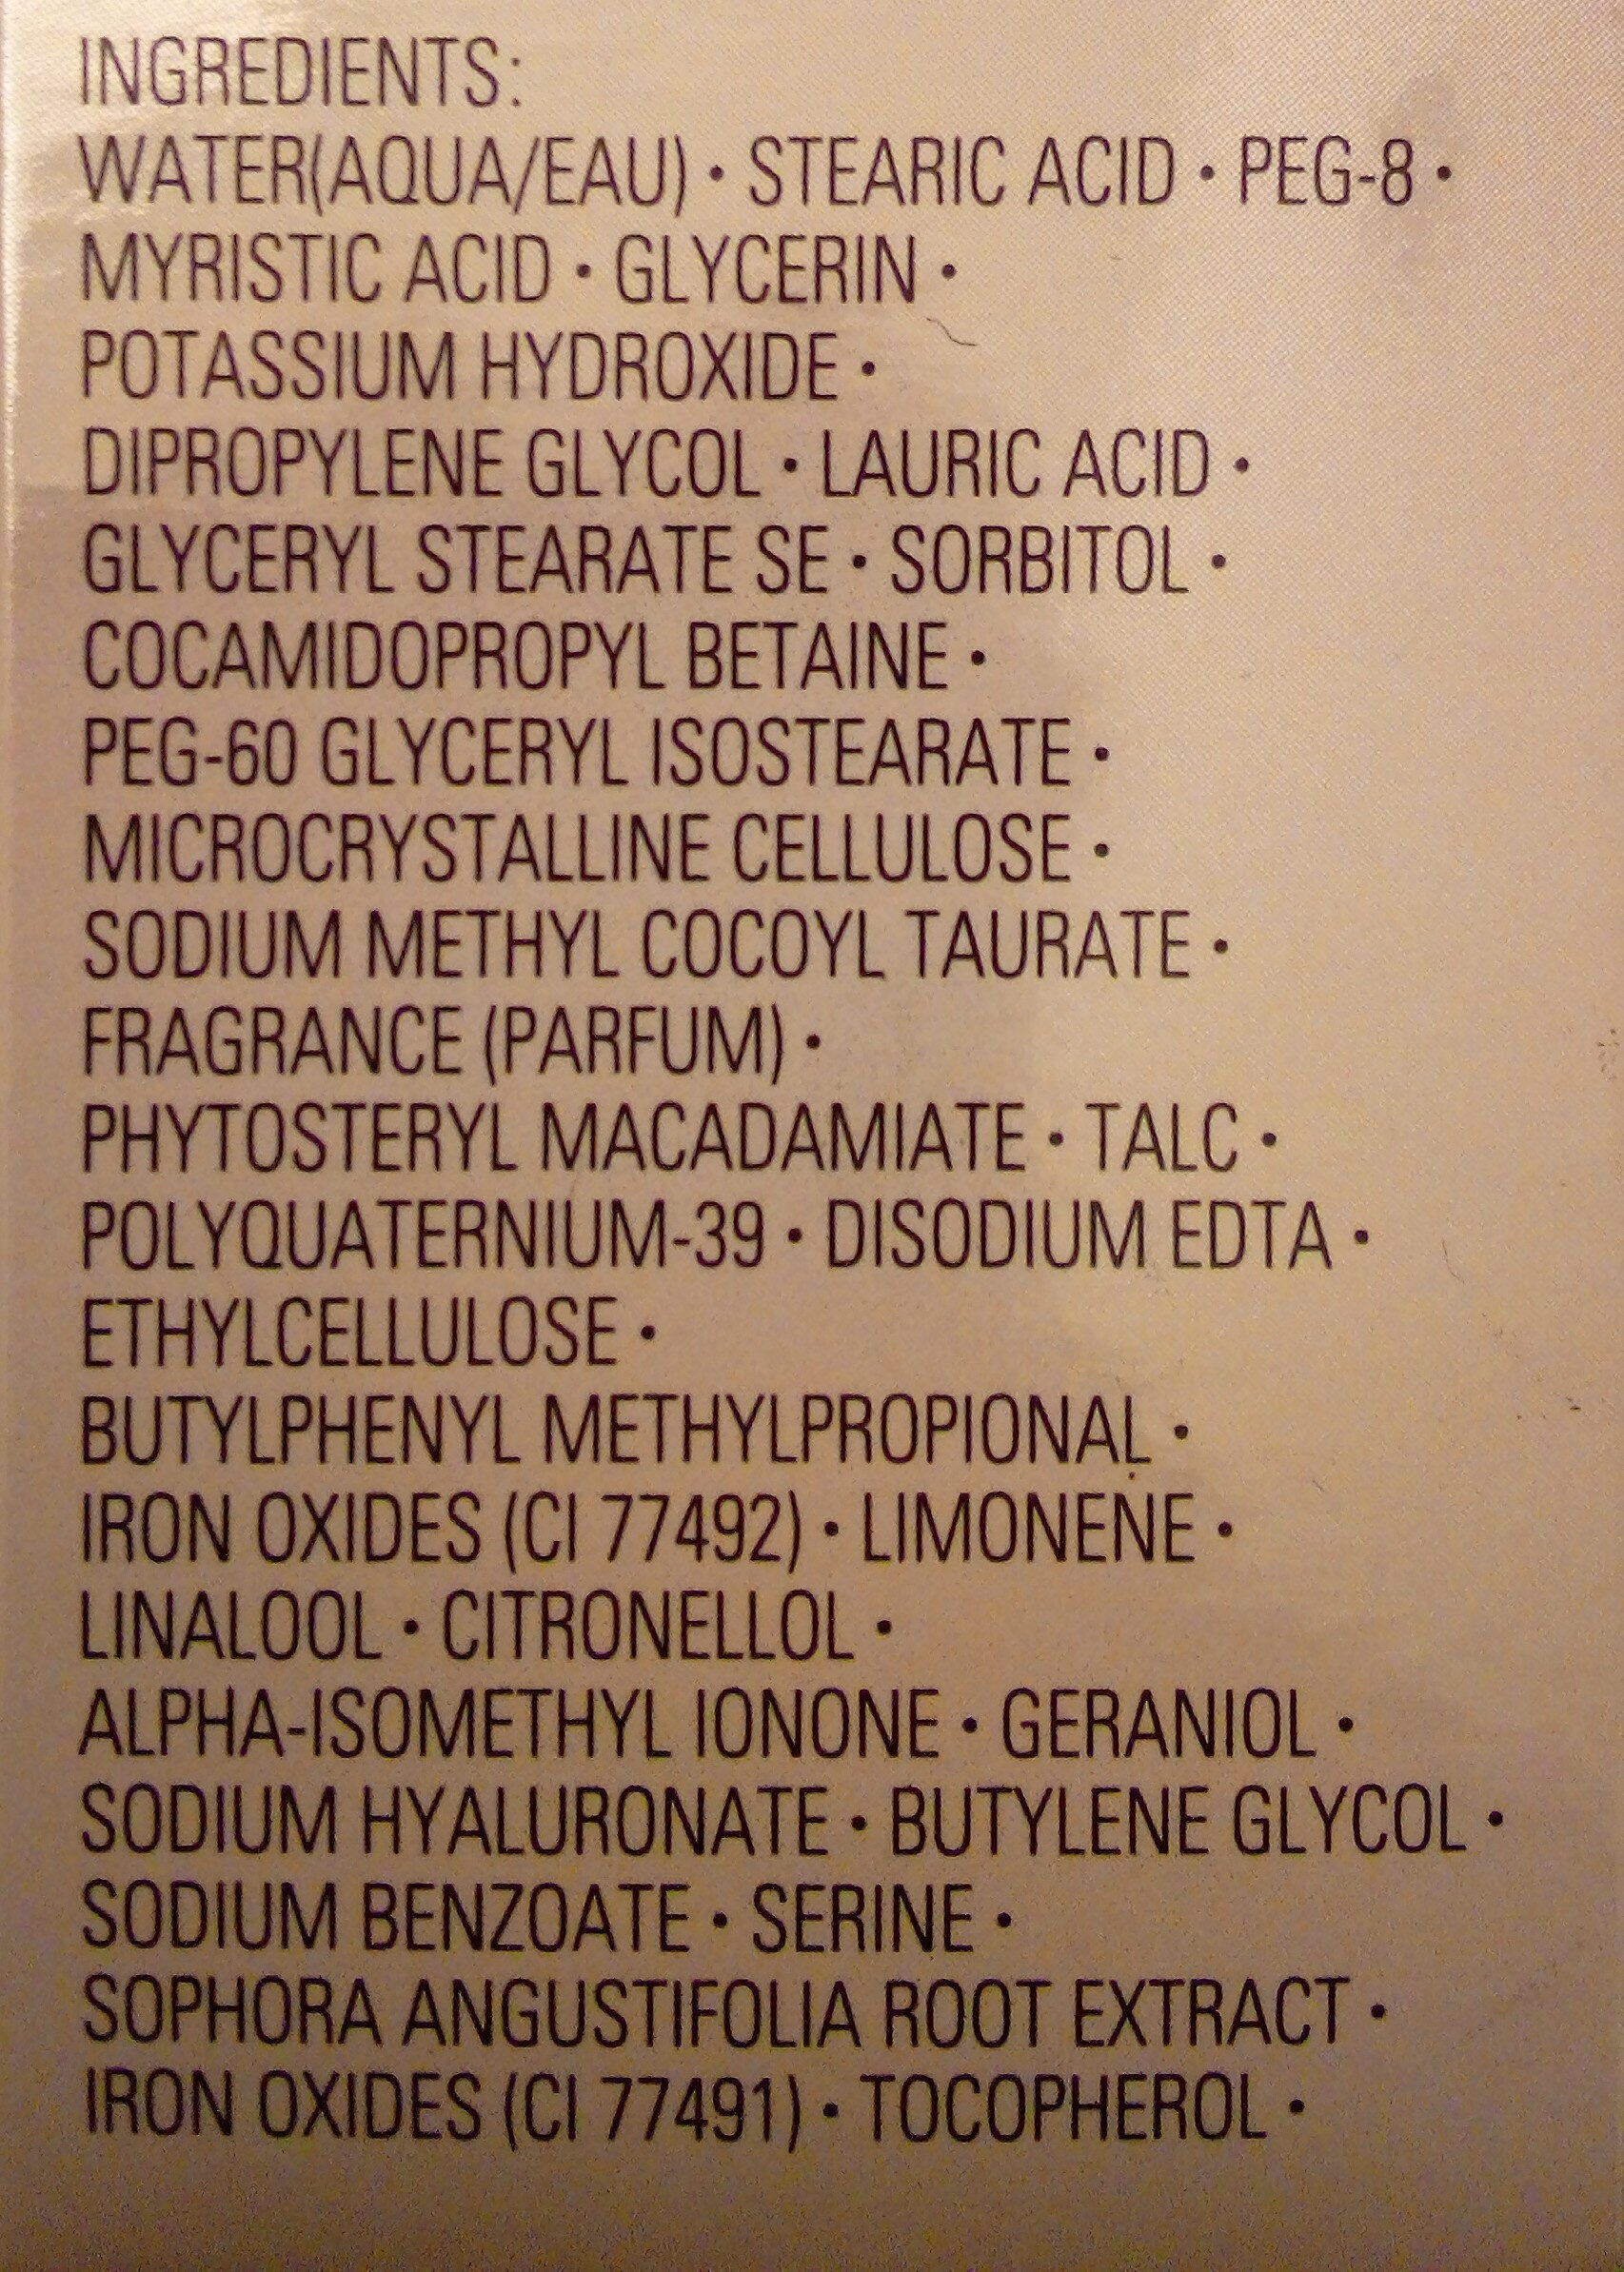 Benefiance mousse nettoyante confort absolu - Ingredients - fr